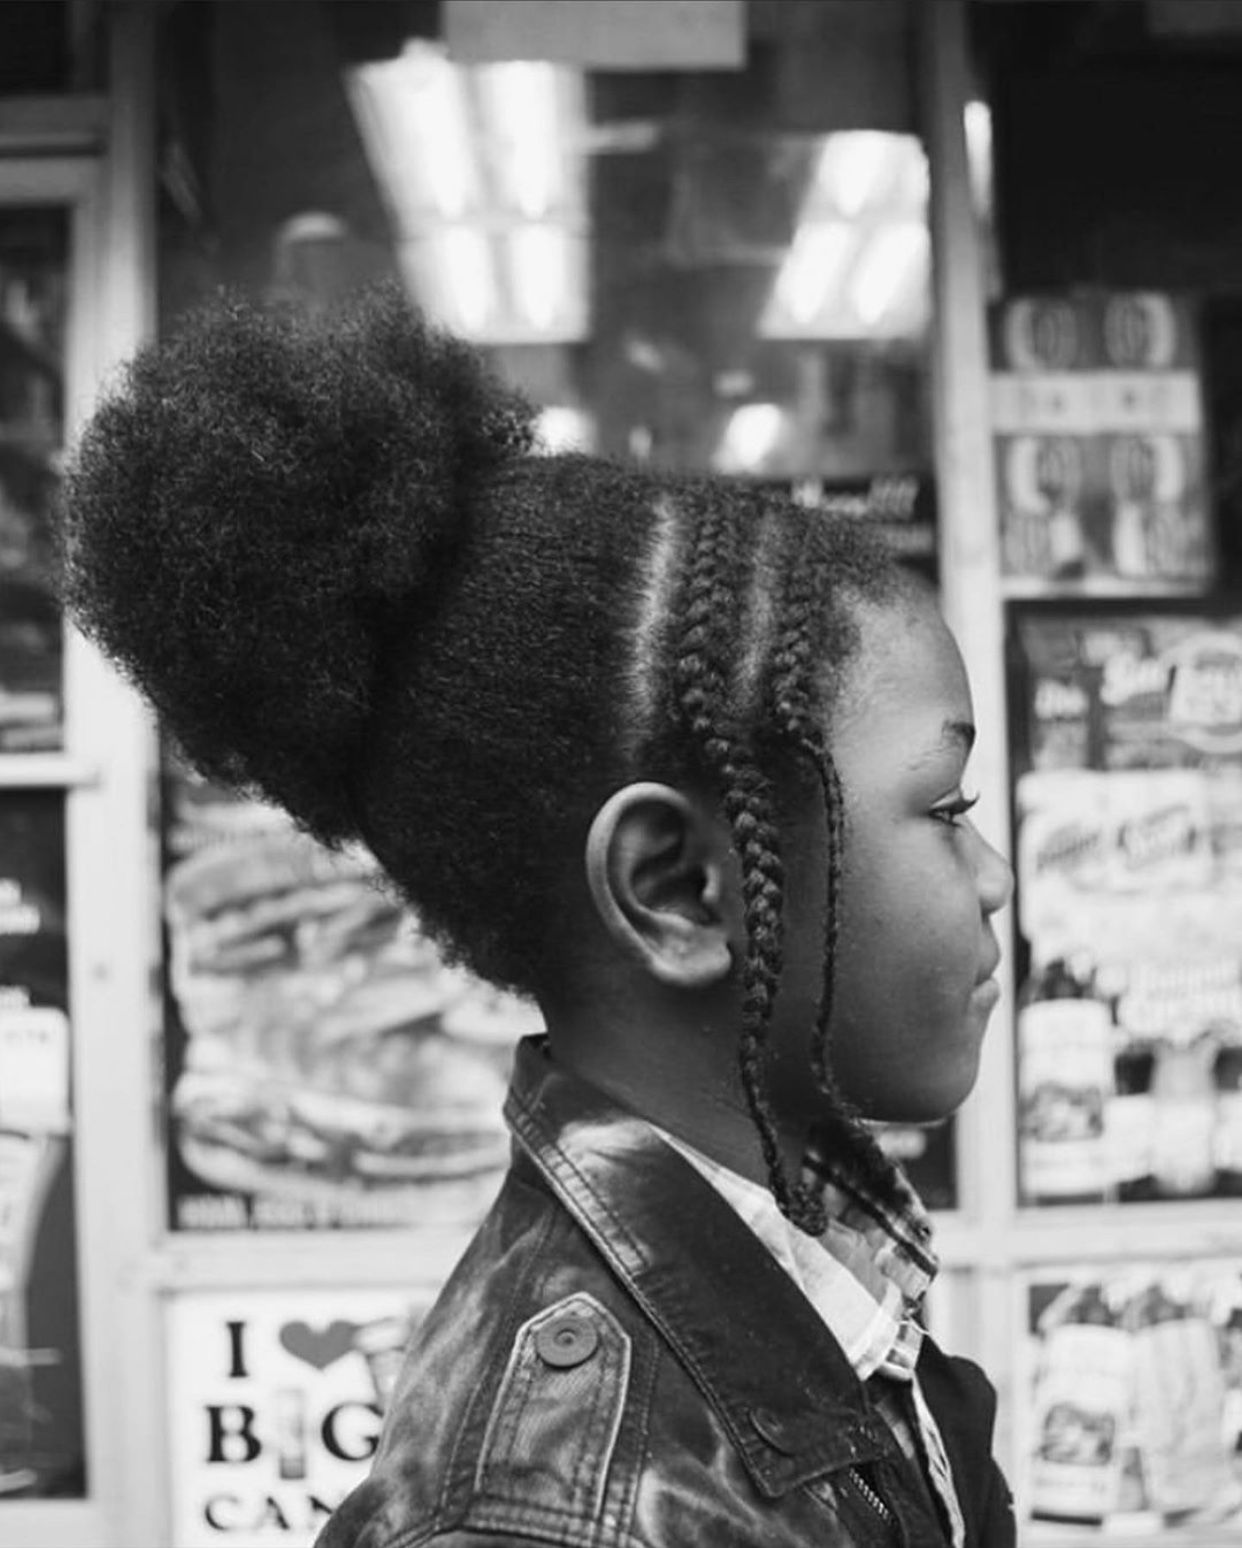 Pin by 𝘒𝘪𝘦𝘳𝘳𝘢 🌸 on ⓗⓐⓘⓡ in 2020 Winter hats, Afro, Hair